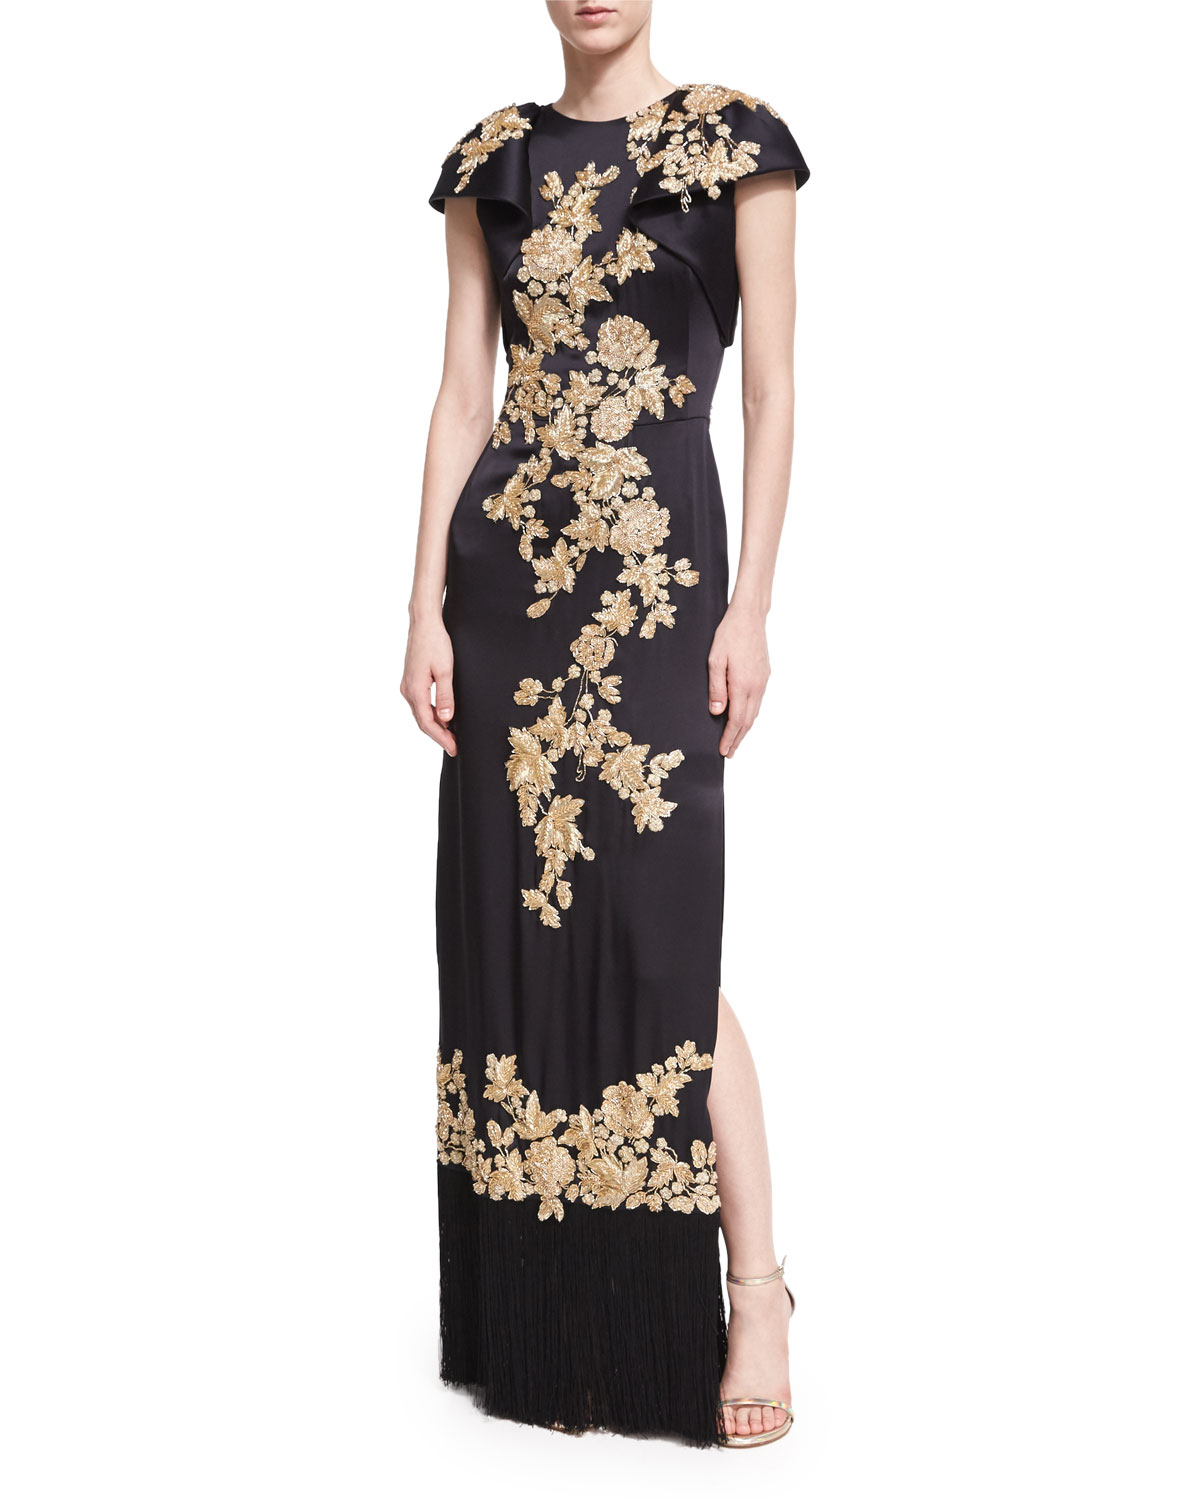 Floral-Embroidered Column Gown with Fringe Hem, Black